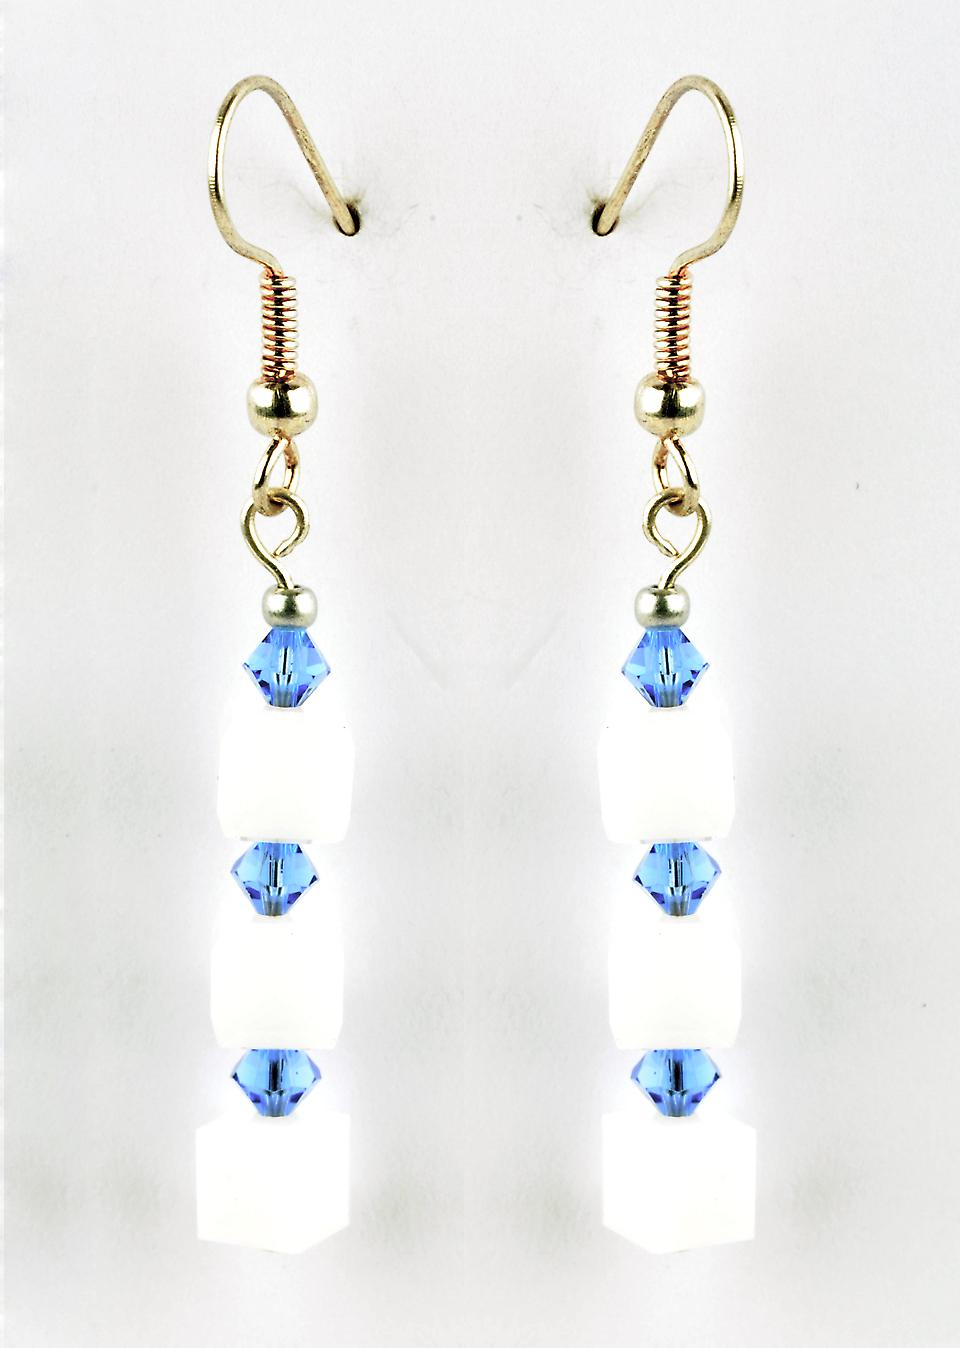 Waooh - Fashion Jewellery - WJ0774 - D'Oreille earrings with Swarovski Strass Blue & White Pearls - Frame Colour Silver